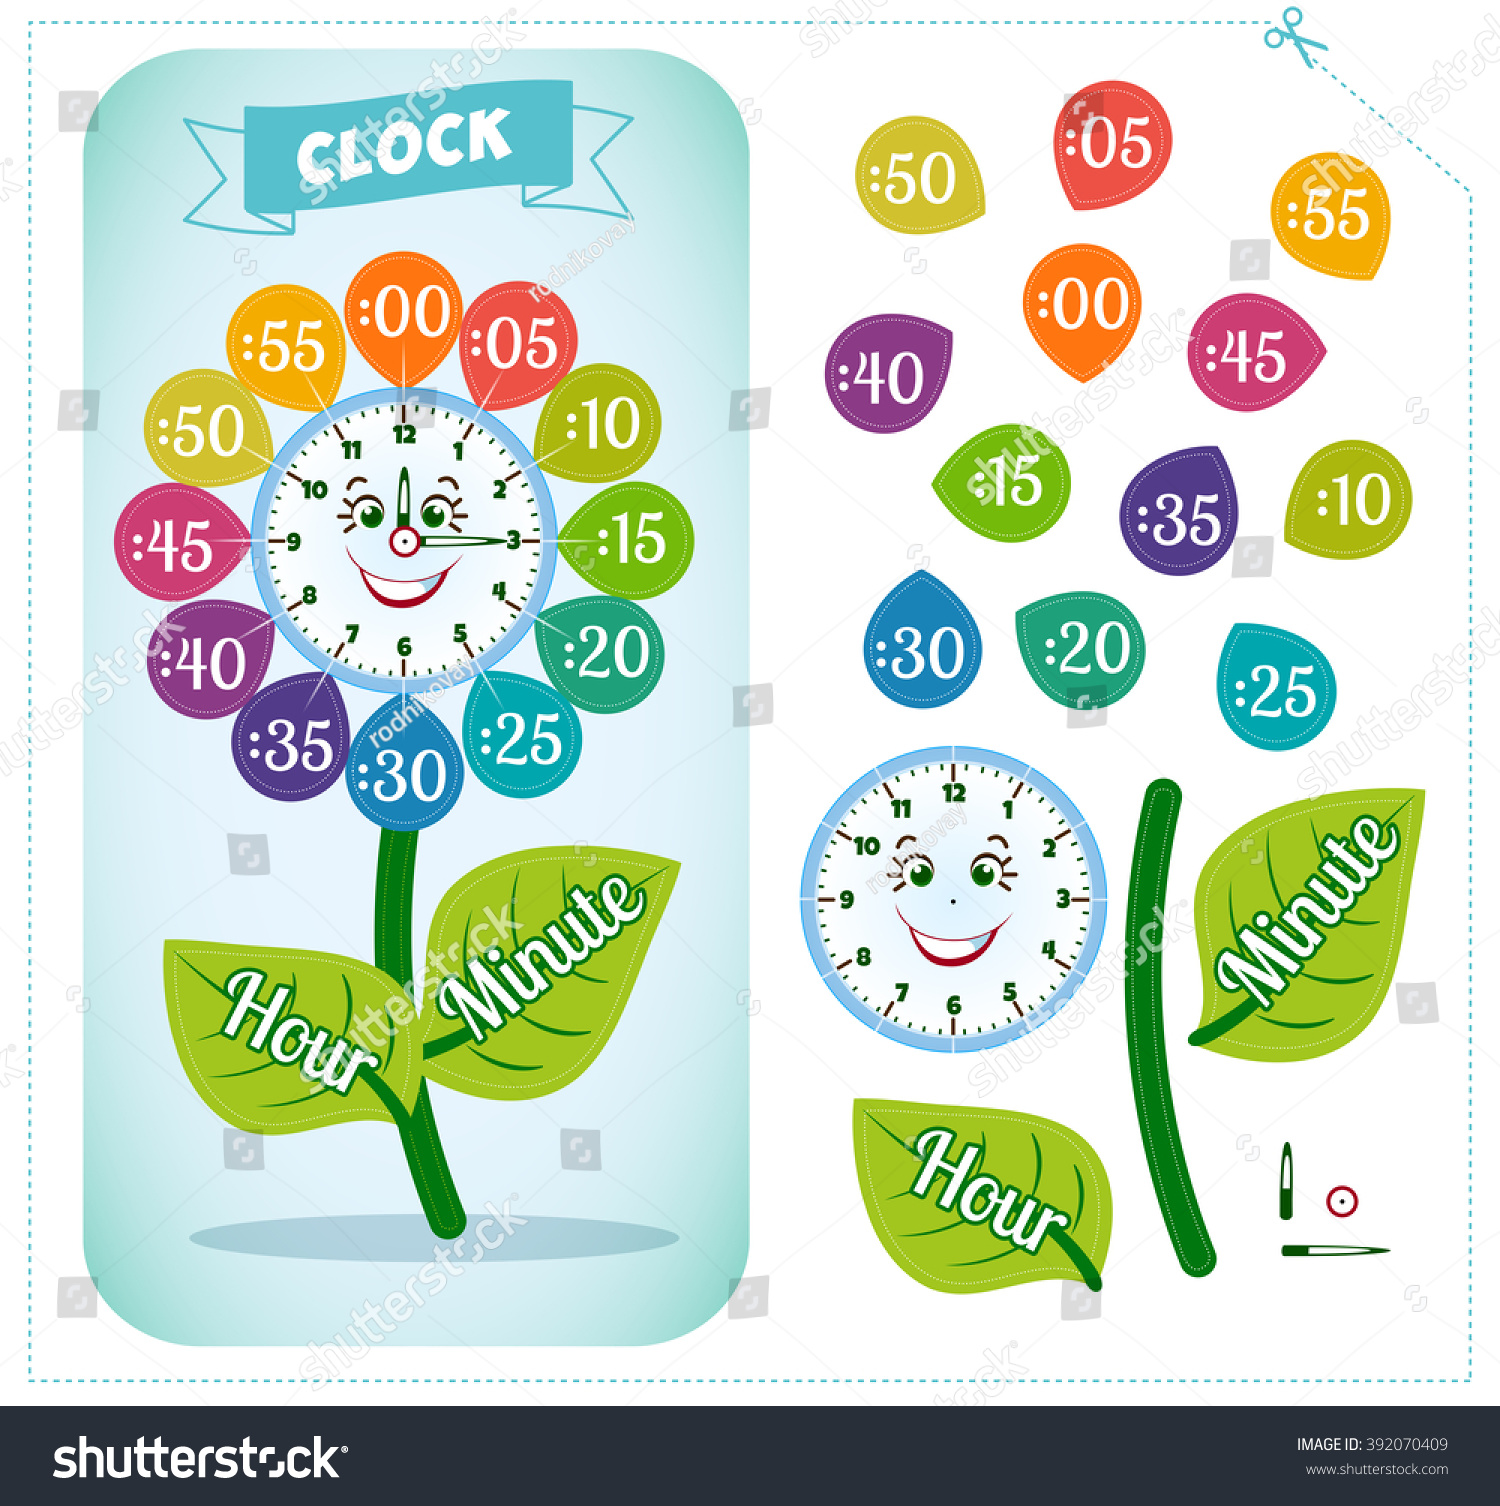 Telling Time Worksheet For School Kids To Identify The